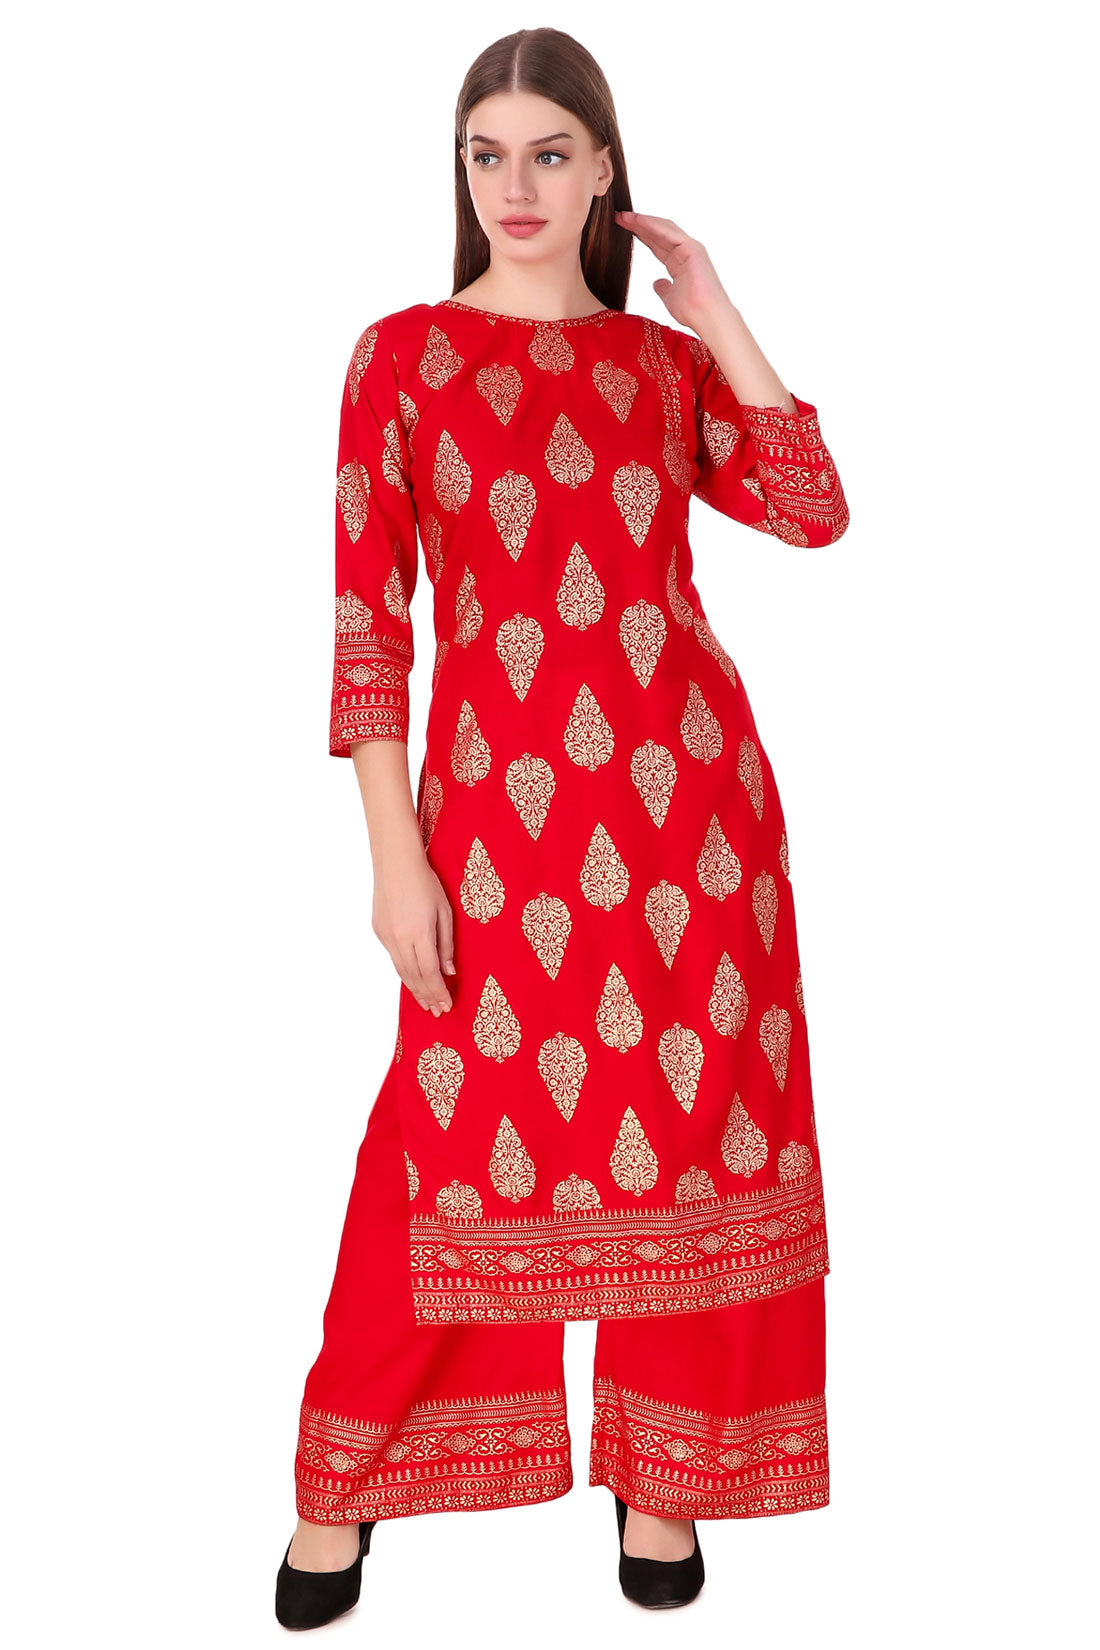 Fasense Women Red Block Printed Kurta with Plazzo Set, VG109